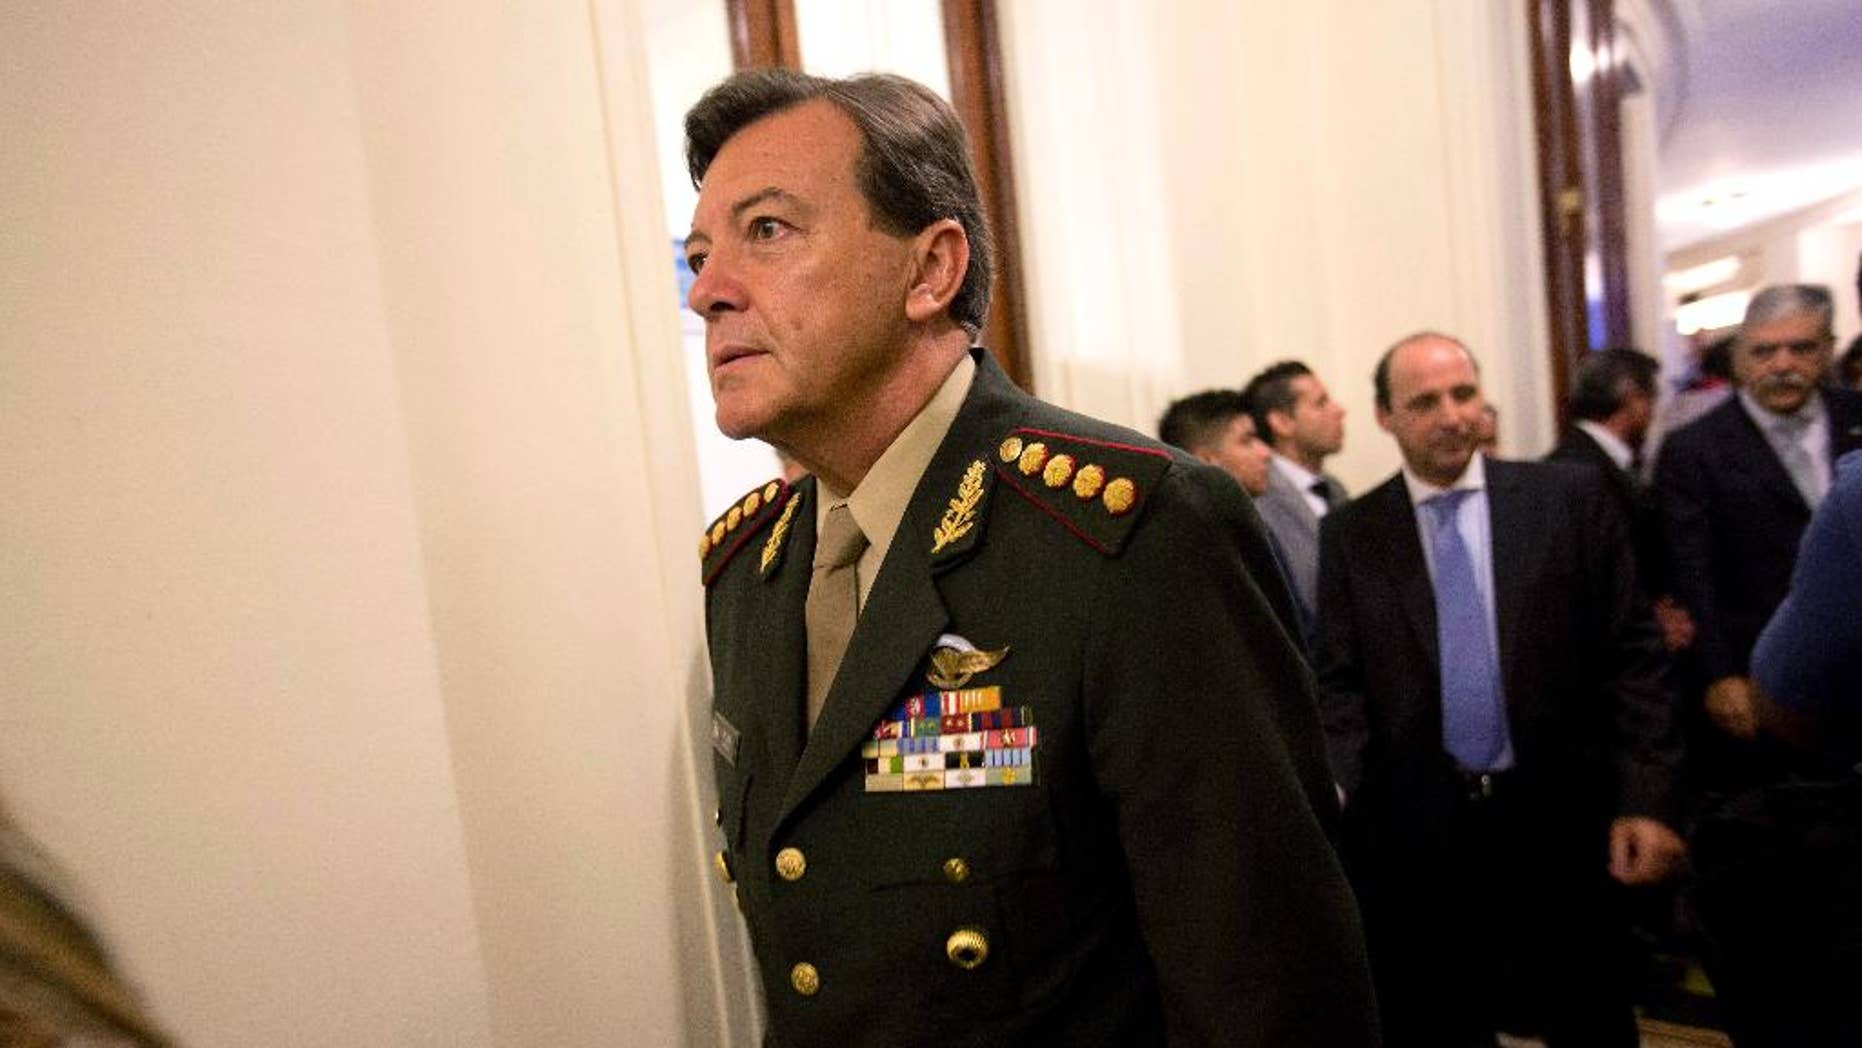 FILE - In this March 1, 2015 file photo, Gen. Cesar Milani arrives to Congress for the inauguration ceremony of the 2015 legislative year in Buenos Aires, Argentina. Milani, head of Argentina's army who's under investigation over his alleged role in the forced disappearance of a soldier during the country's 1976-1983 dictatorship, has asked for retirement on Tuesday, June 23, 2015. (AP Photo/Rodrigo Abd, File)